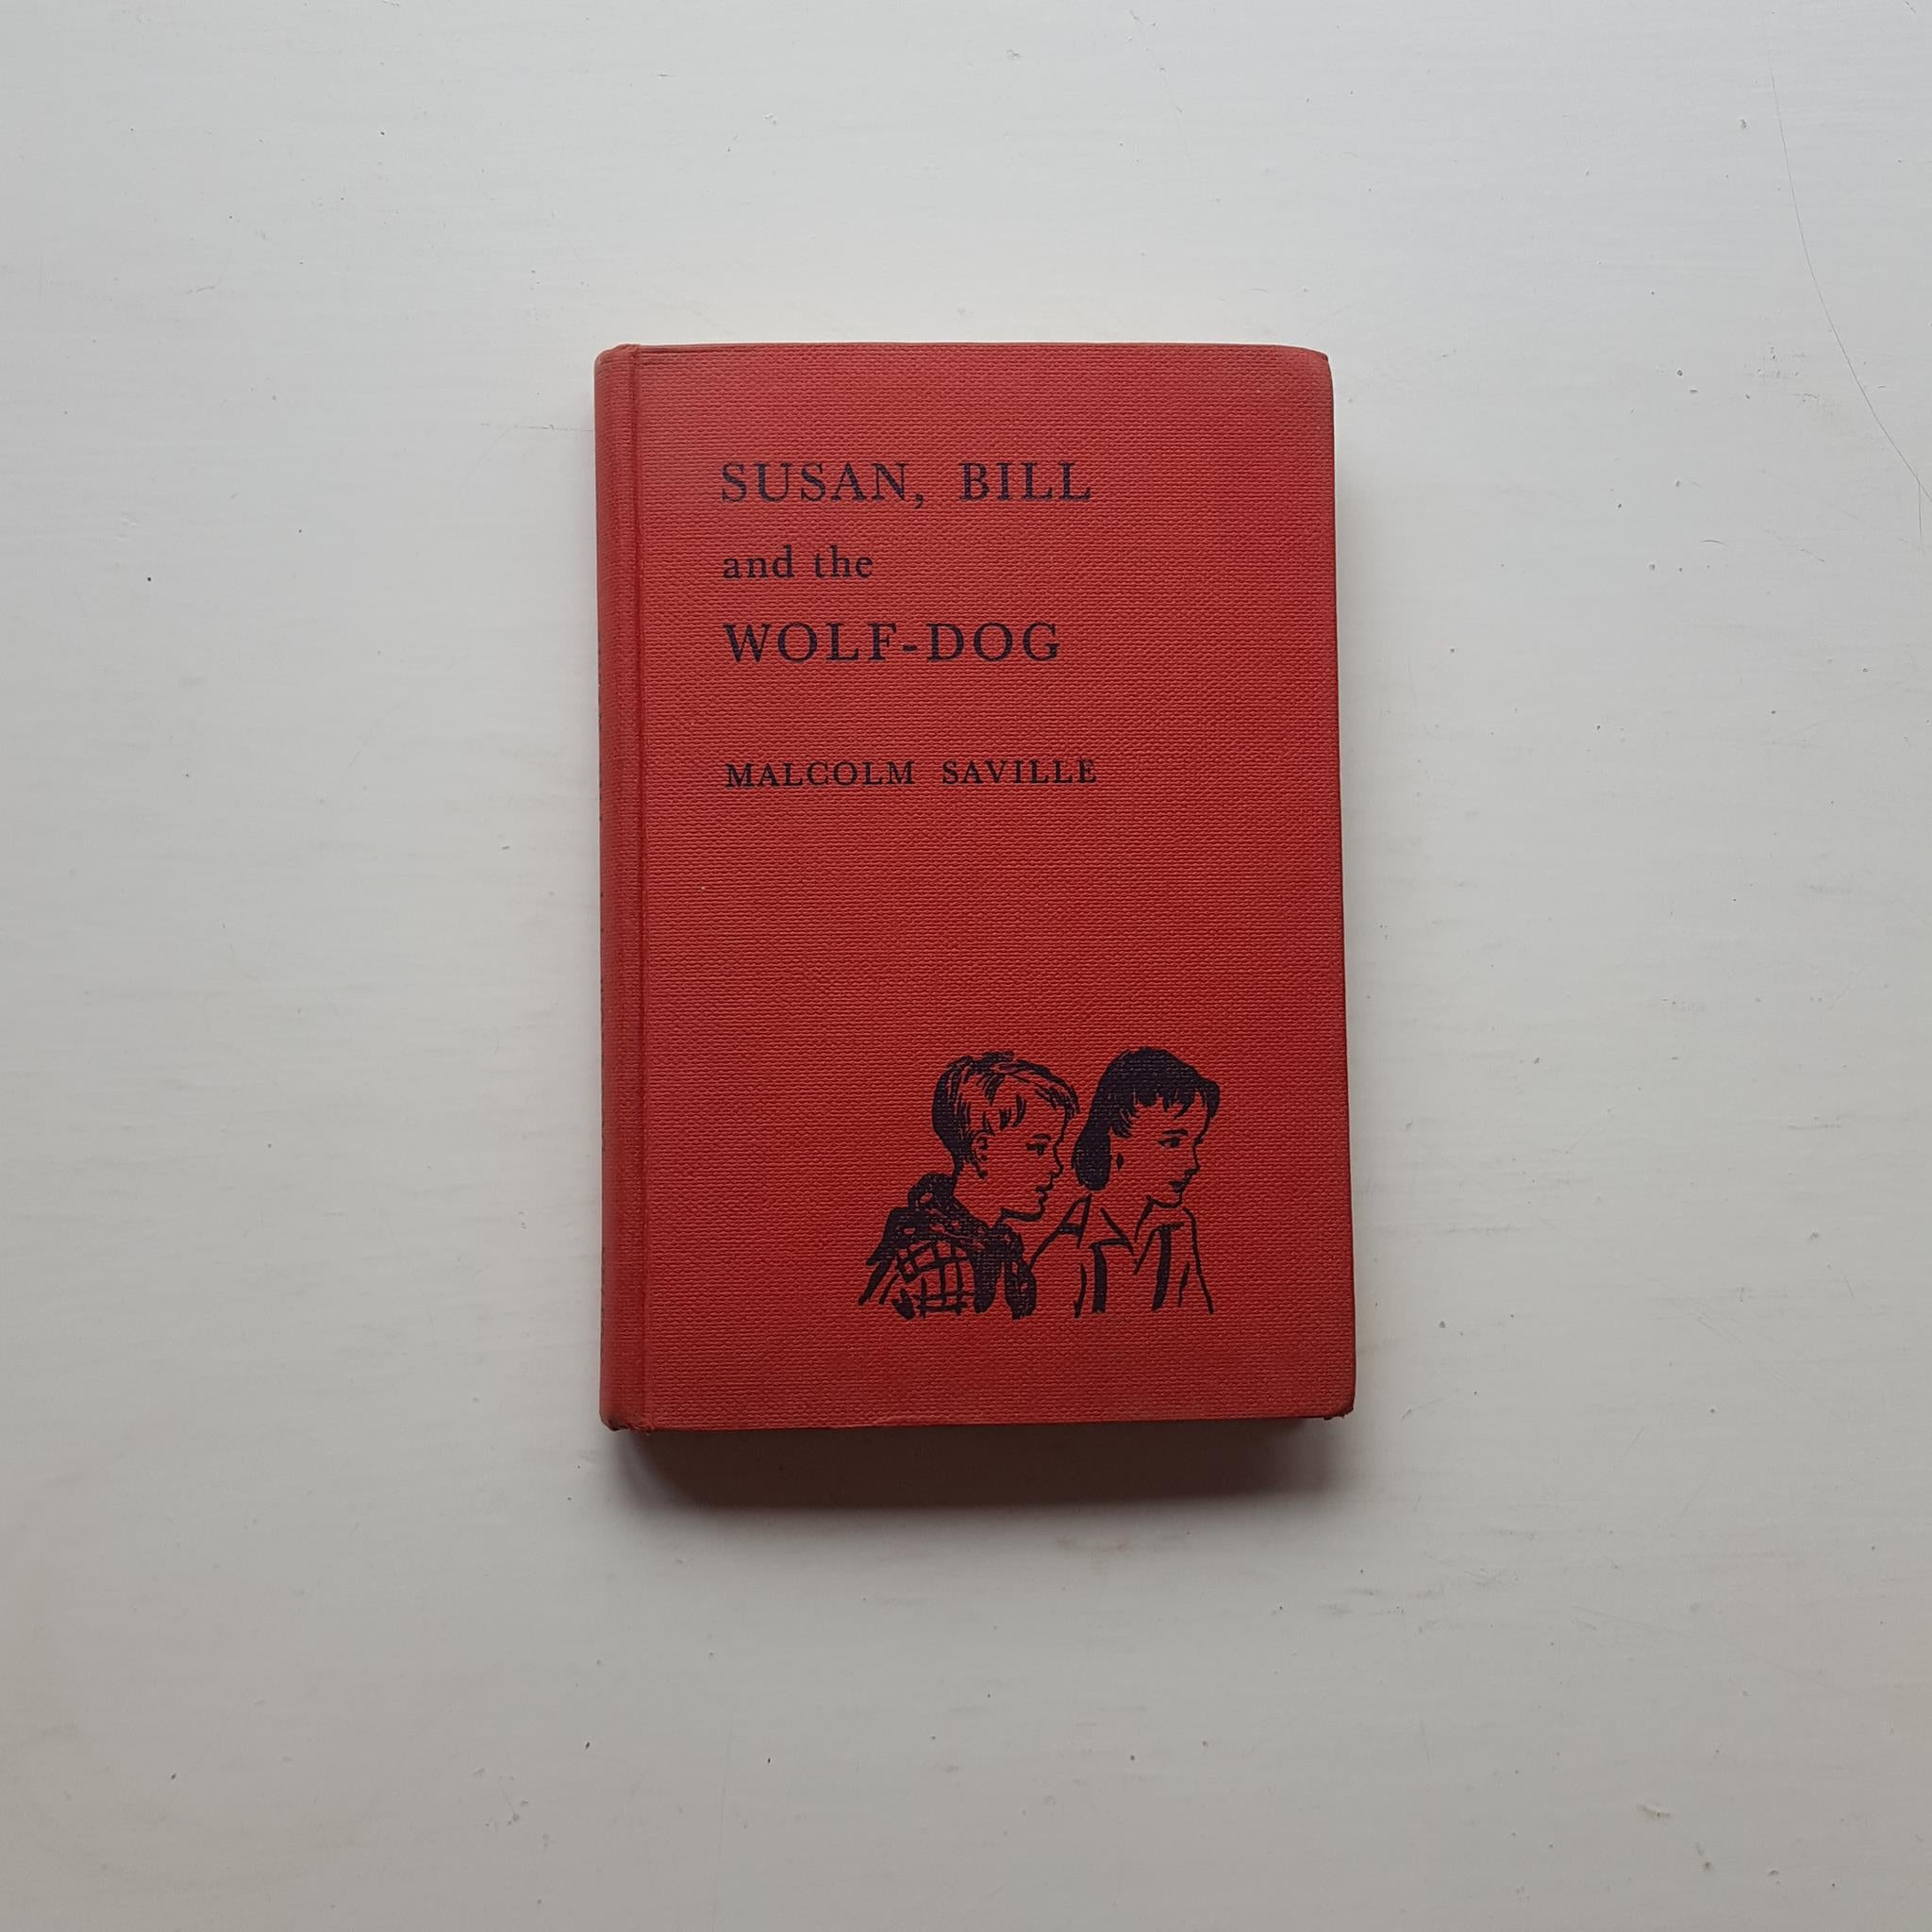 Susan, Bill and the Wolf Dog by Malcolm Saville